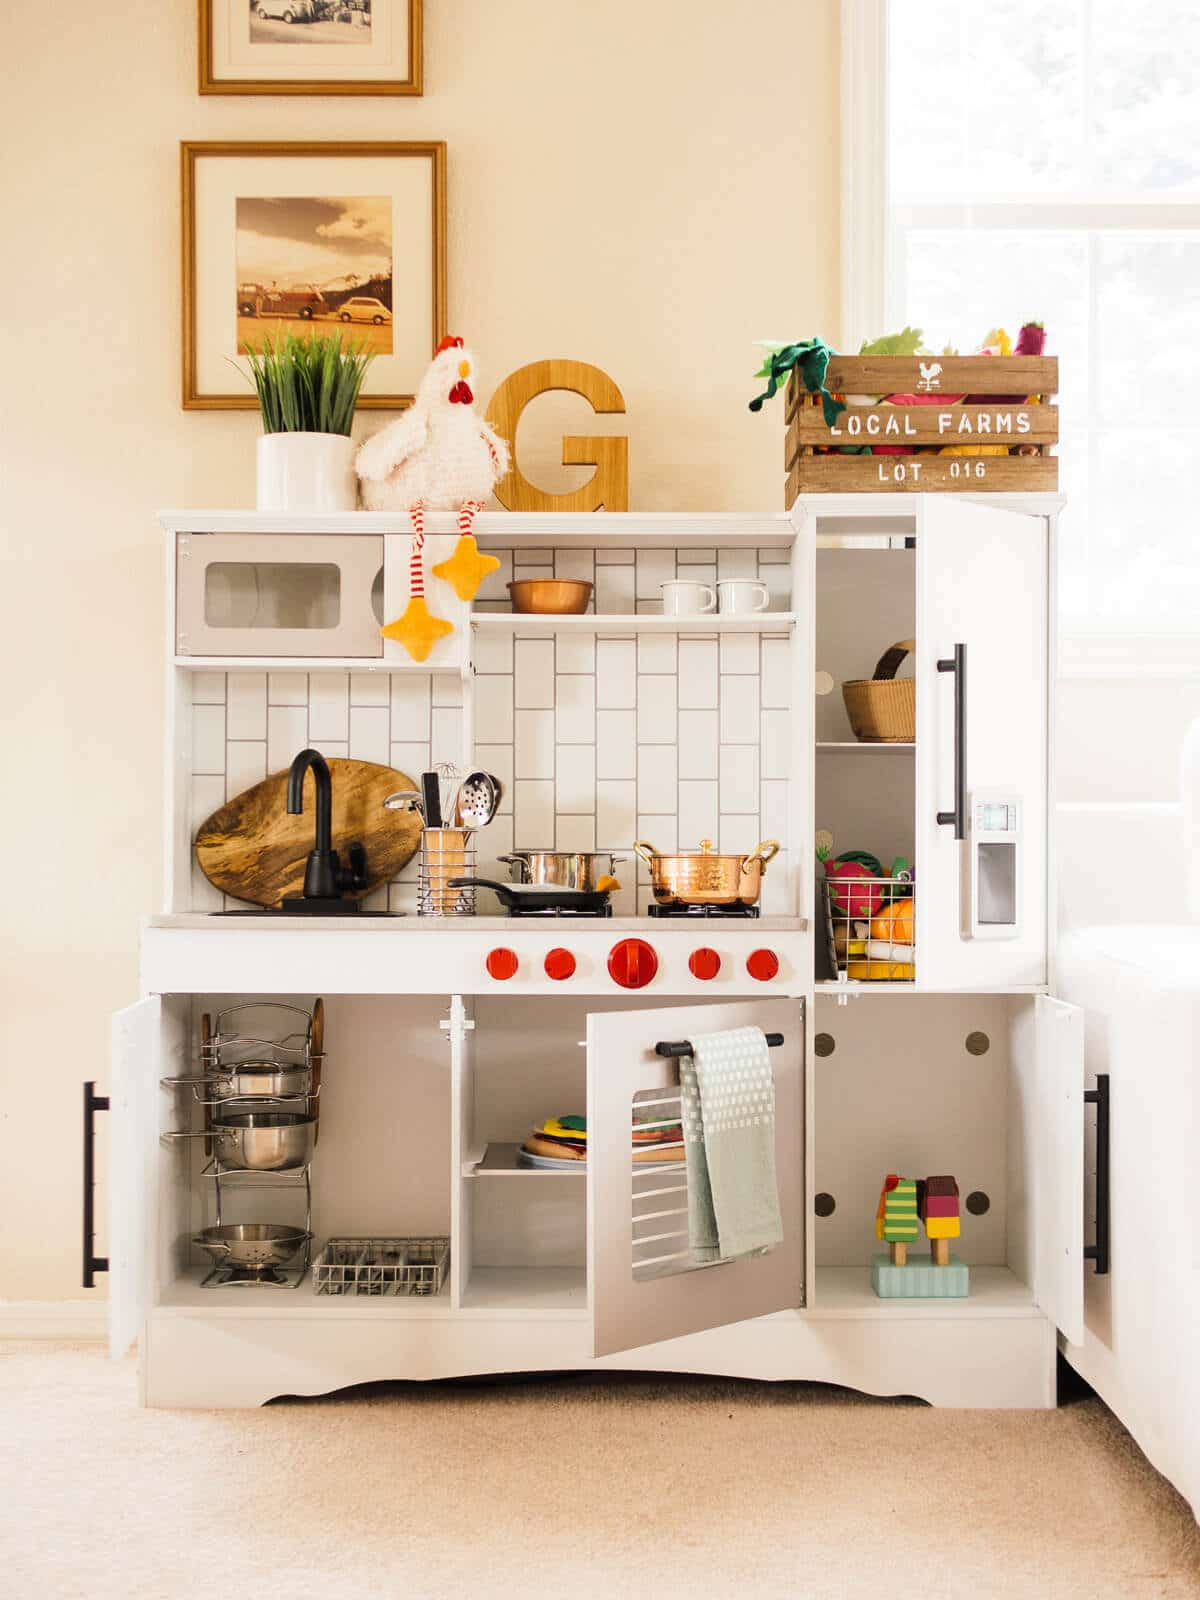 A play kitchen makeover DIY